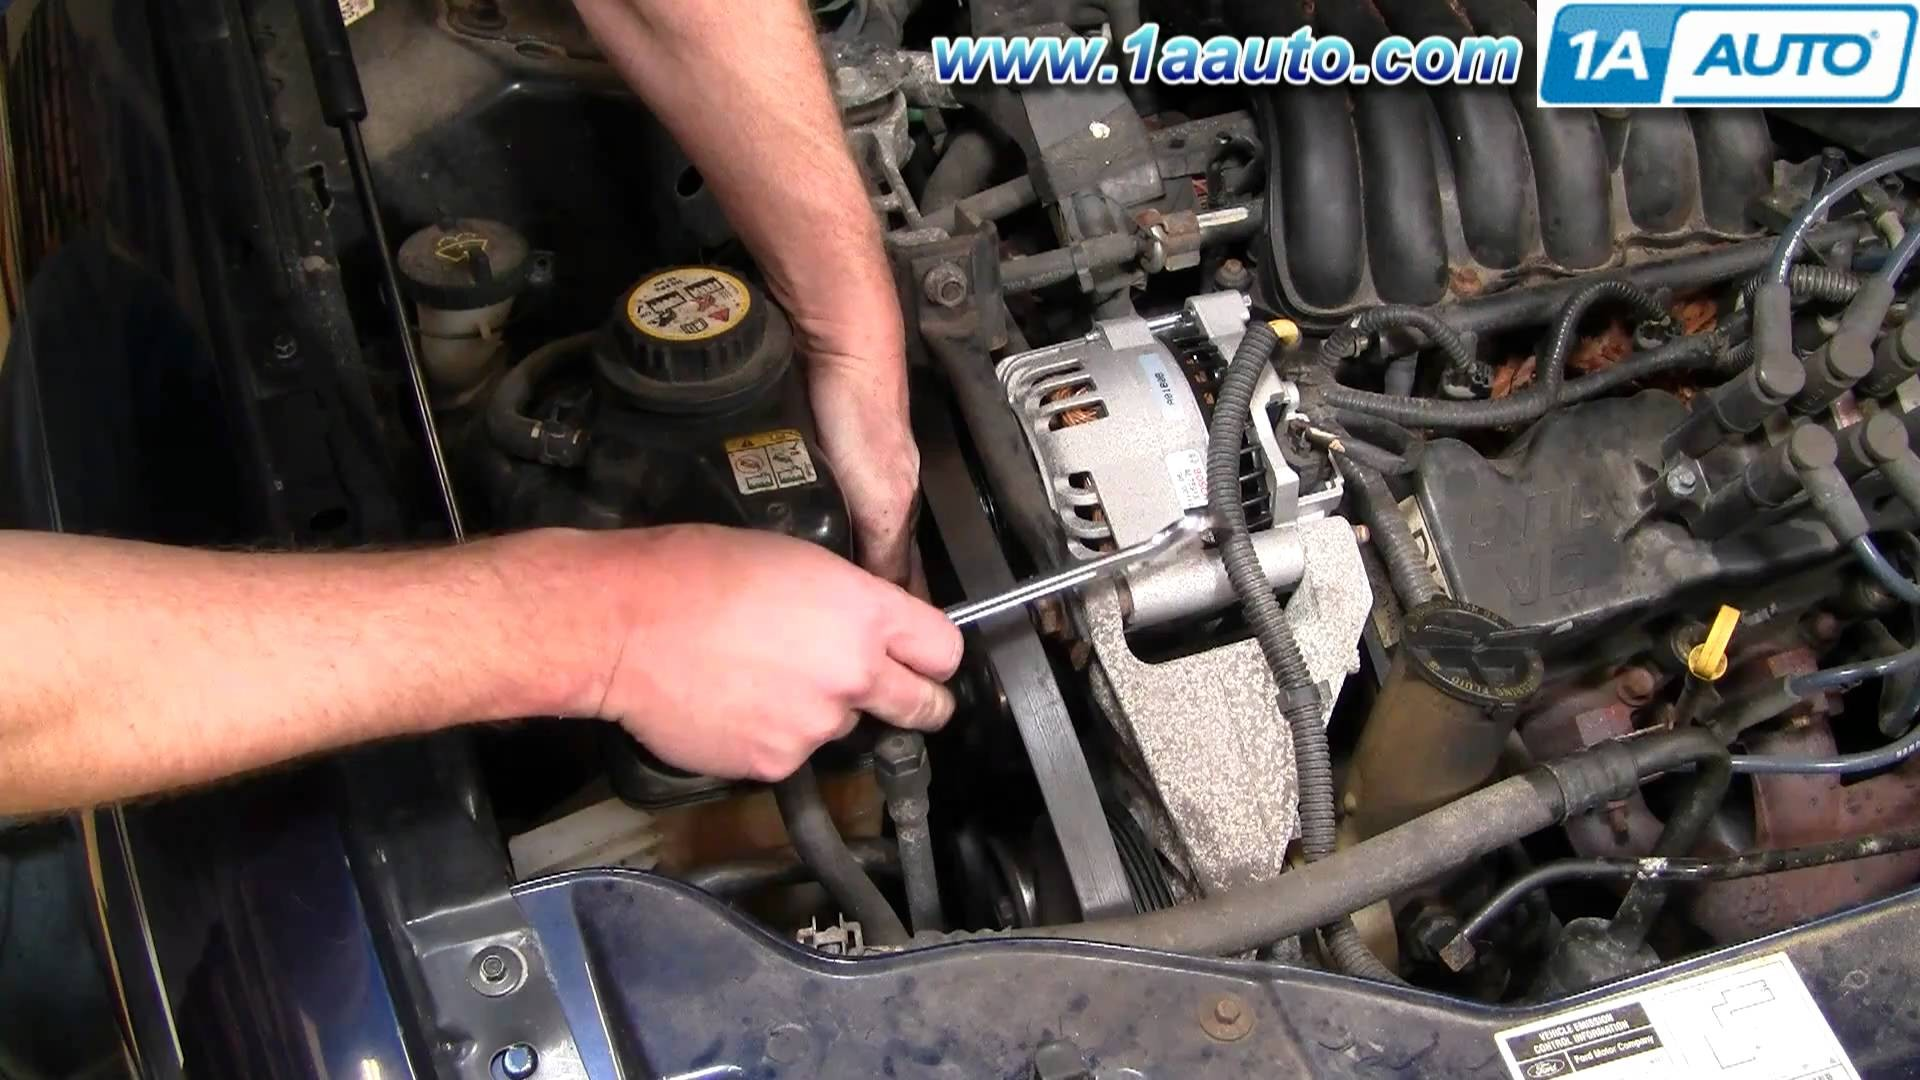 2002 Ford Windstar Engine Diagram 1997 Plete System Wiring How To Install Replace Serpentine Belt Idler Pulley Taurus 3